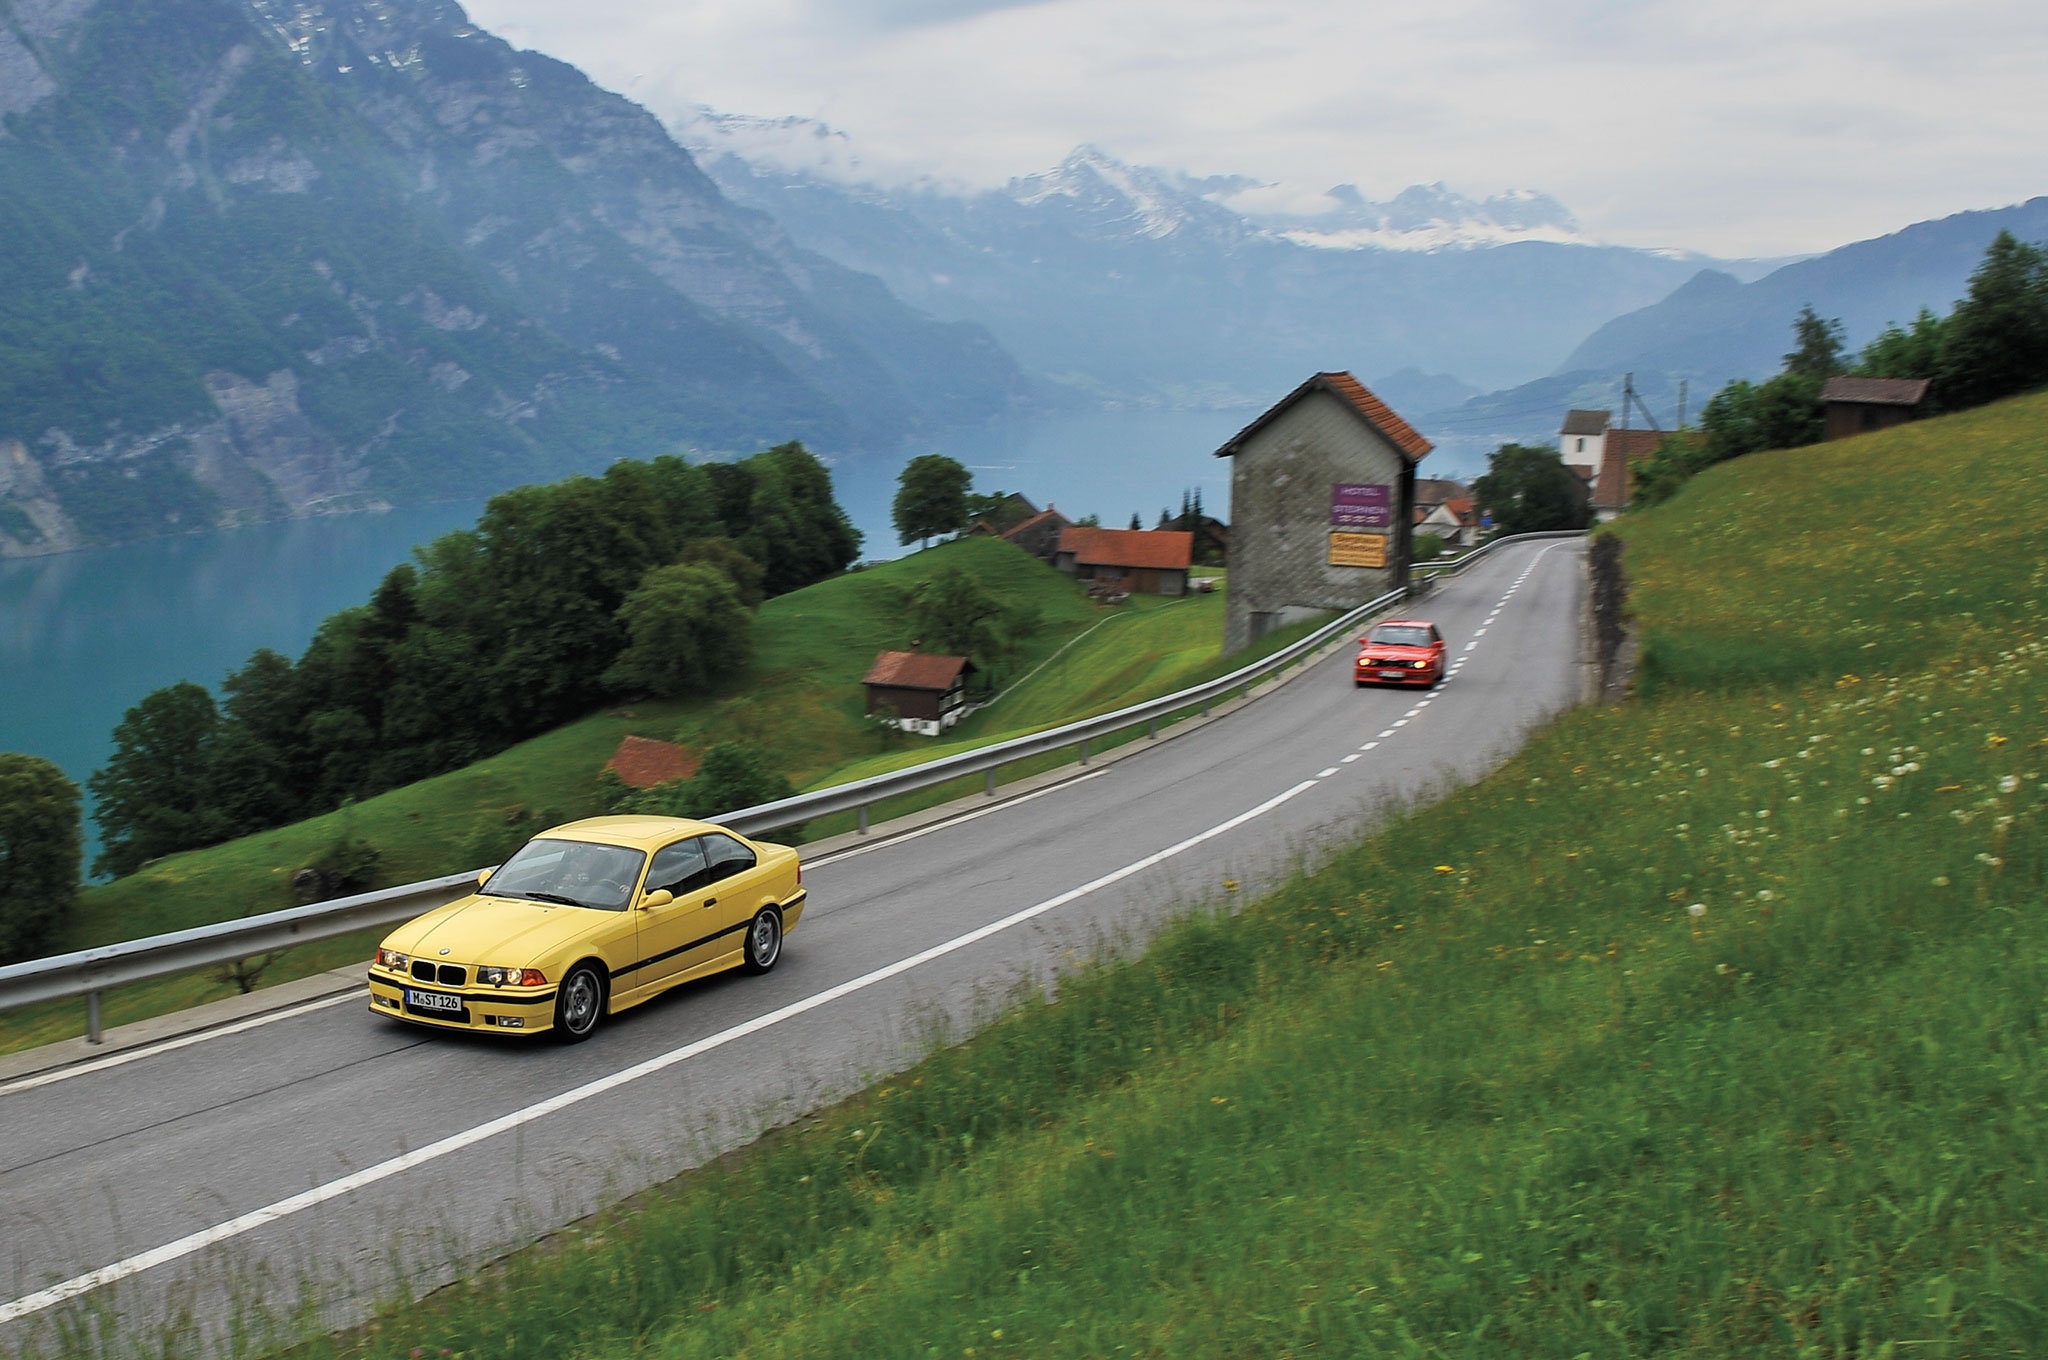 An alpine idyll of winding roads, agile cars, and snow flurries on a summer's day.